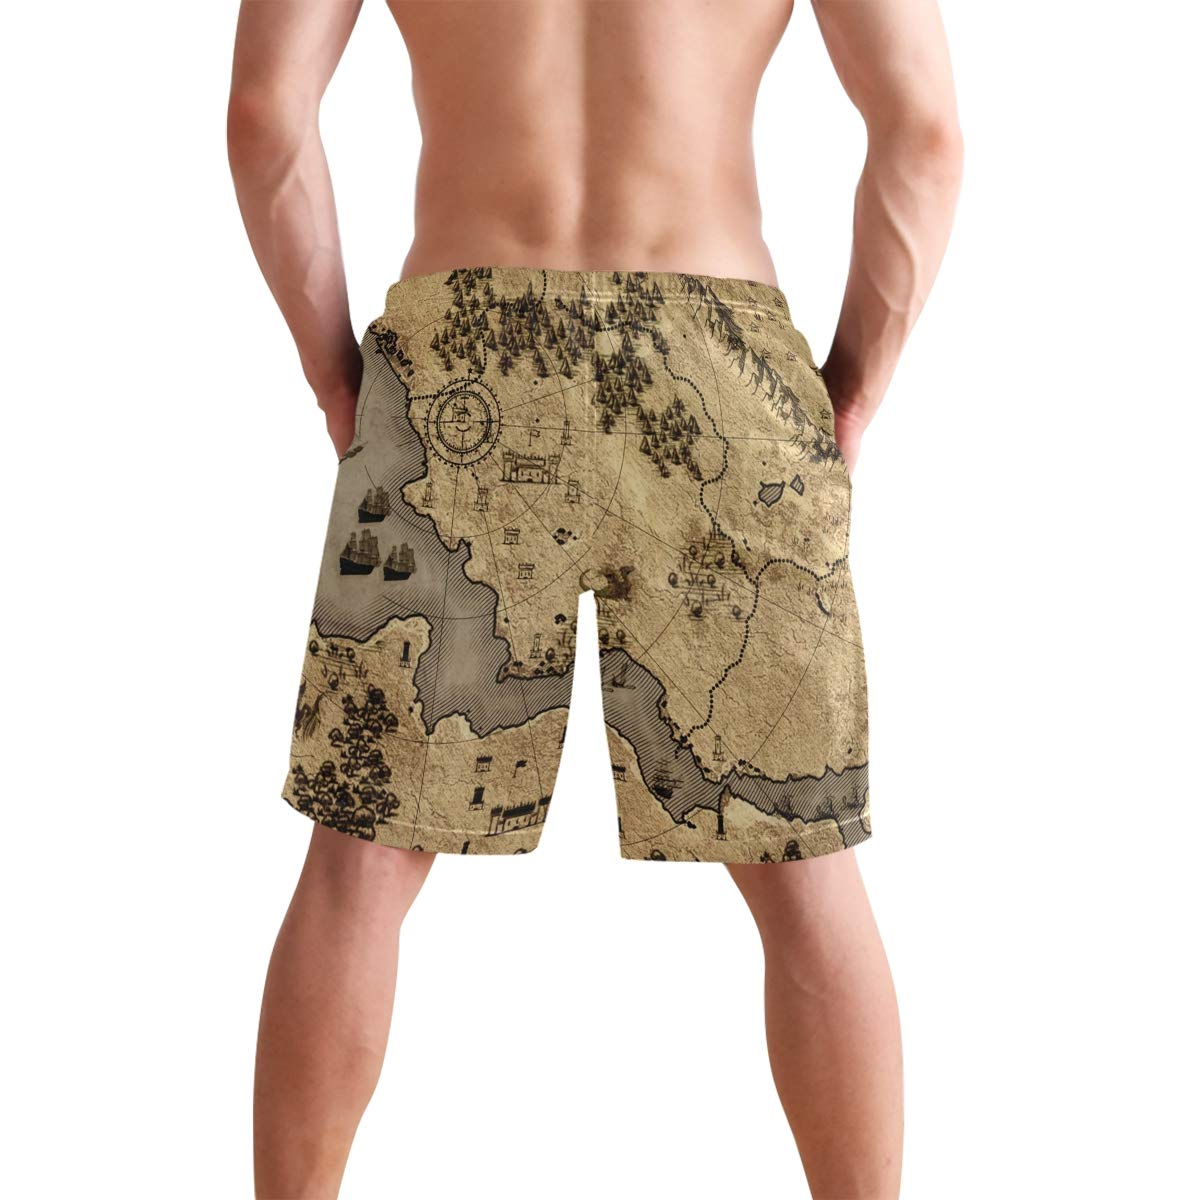 JERECY Mens Swim Trunks Vintage Nautical Wold Map Quick Dry Board Shorts with Drawstring and Pockets